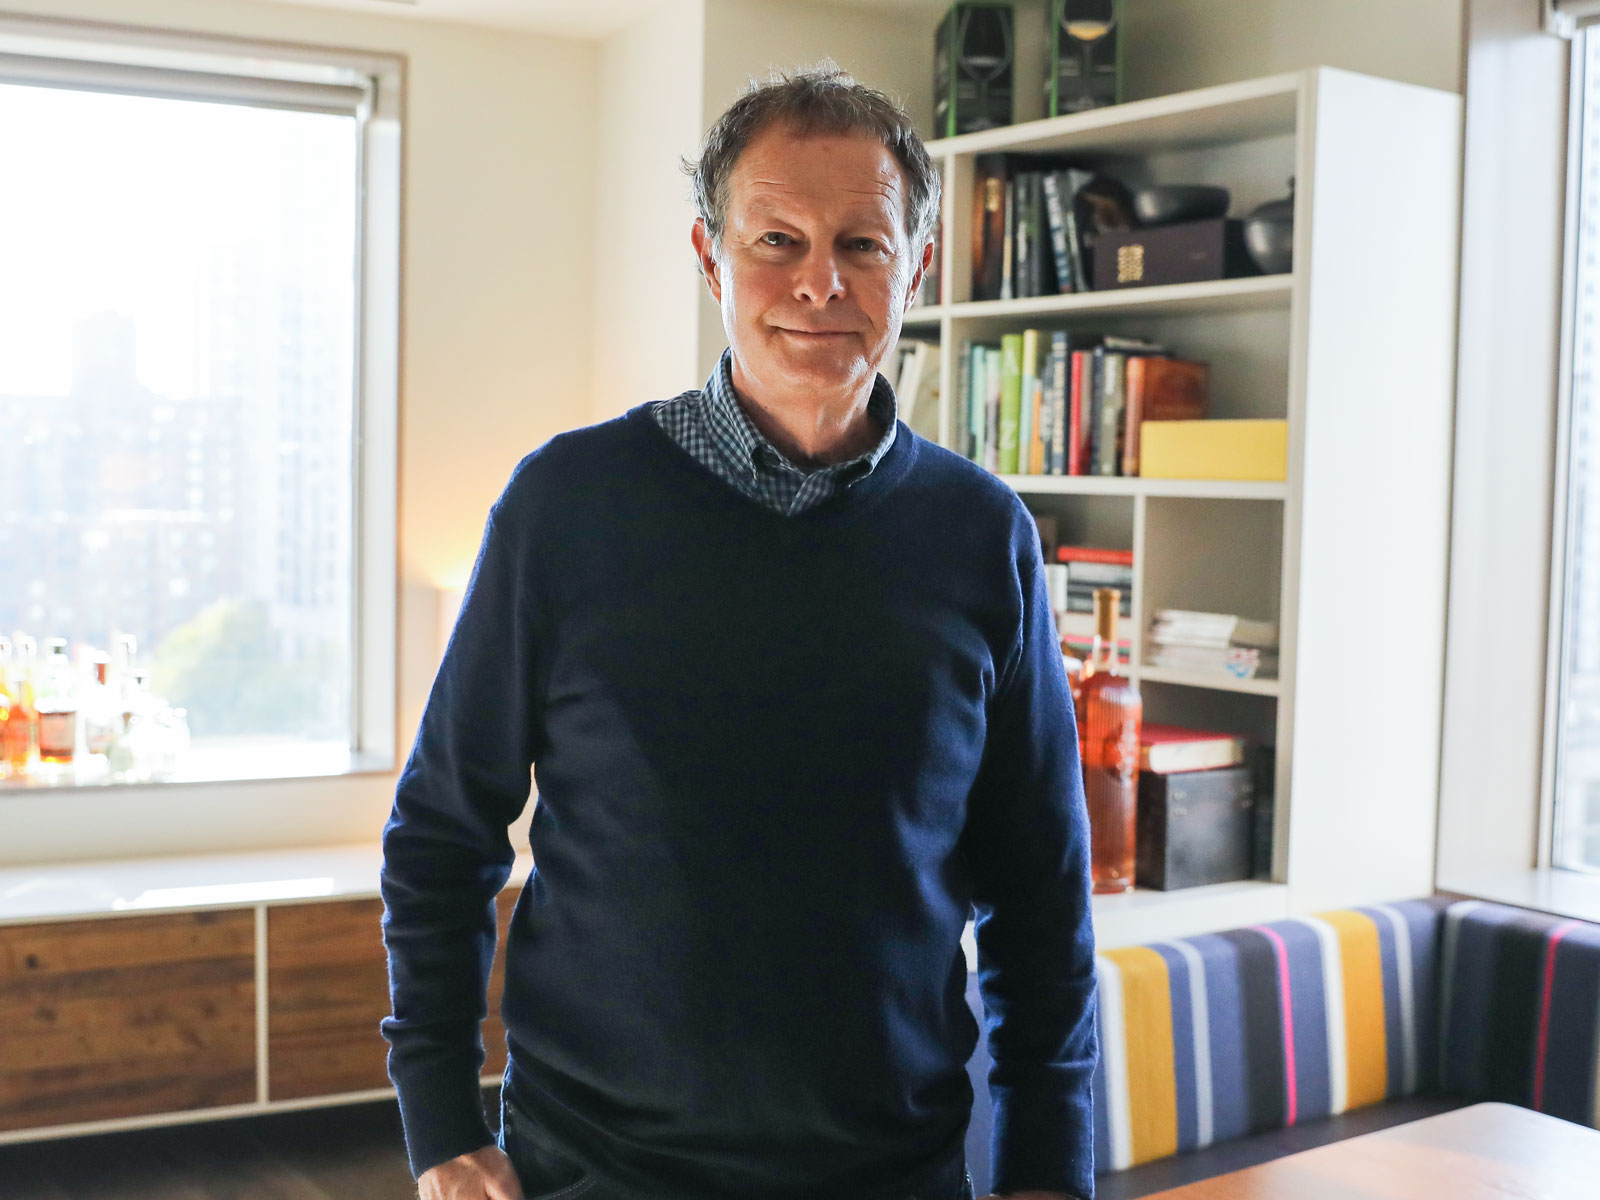 Whole Foods CEO John Mackey on His Cookbook, Lower Prices, and Higher Purpose